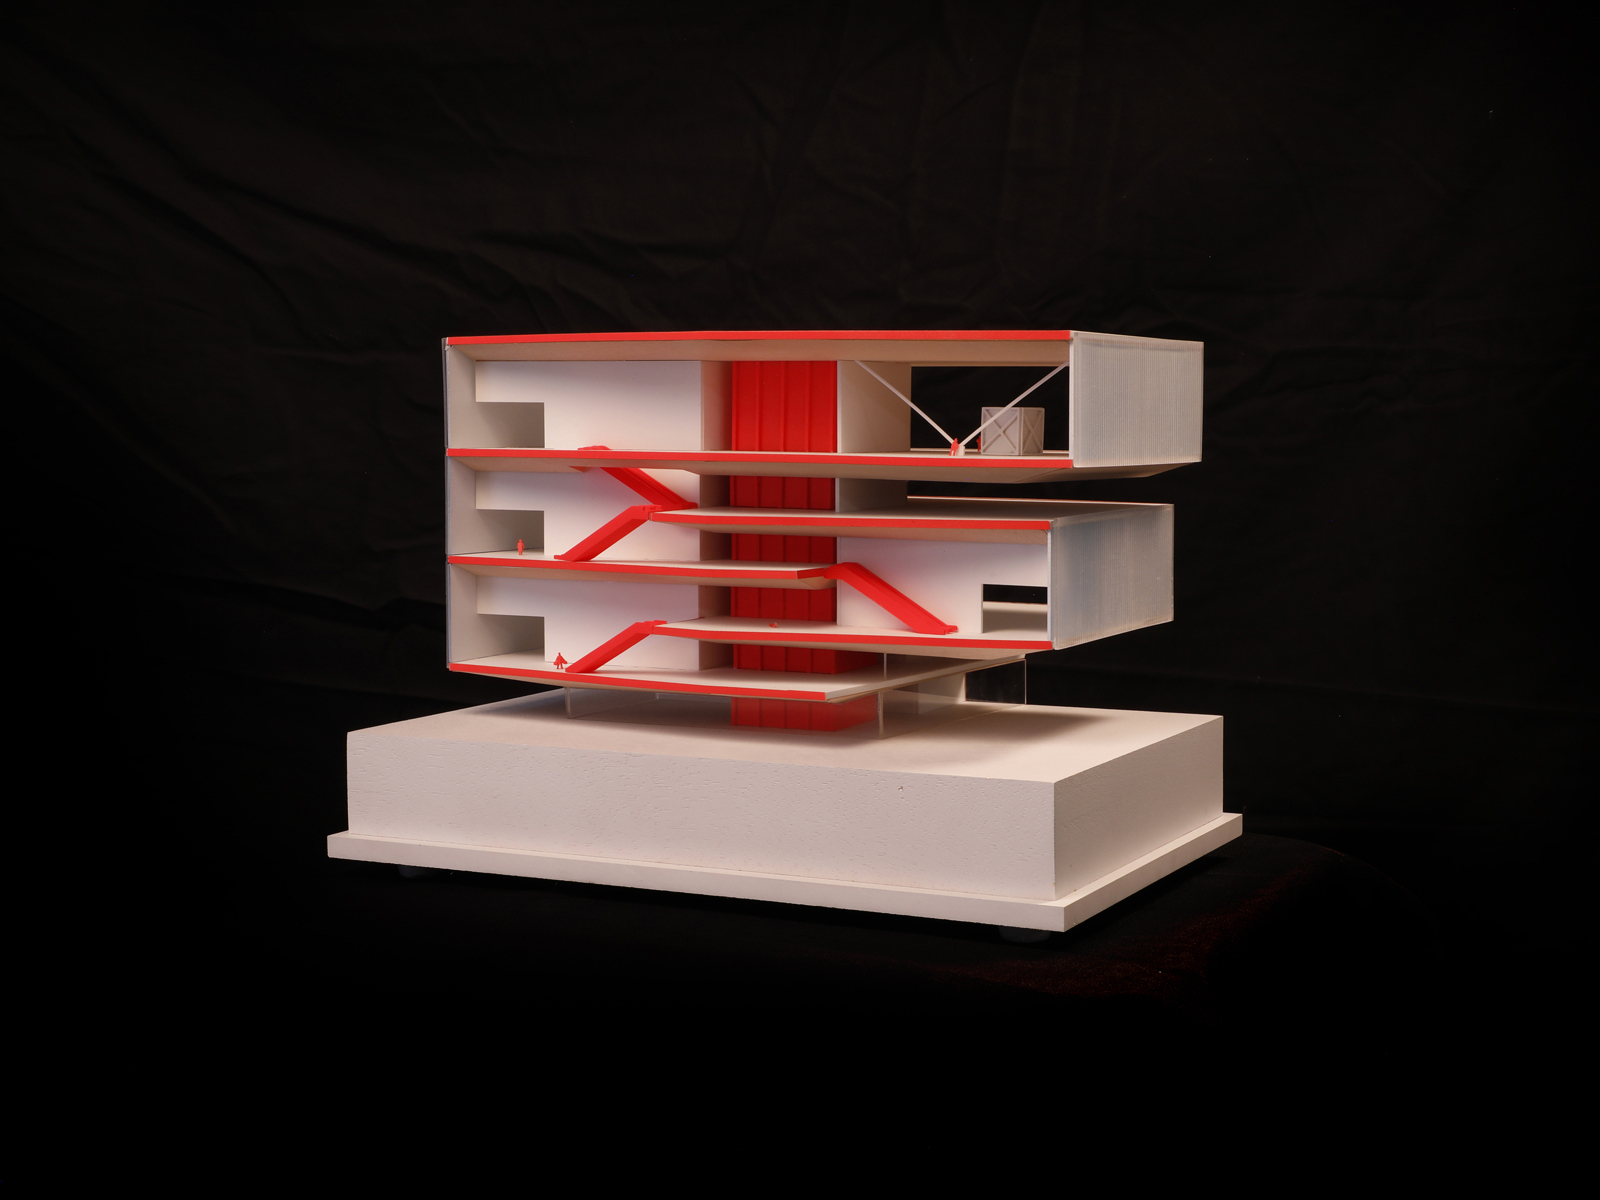 Images: AL_A and Architectus © Make Models